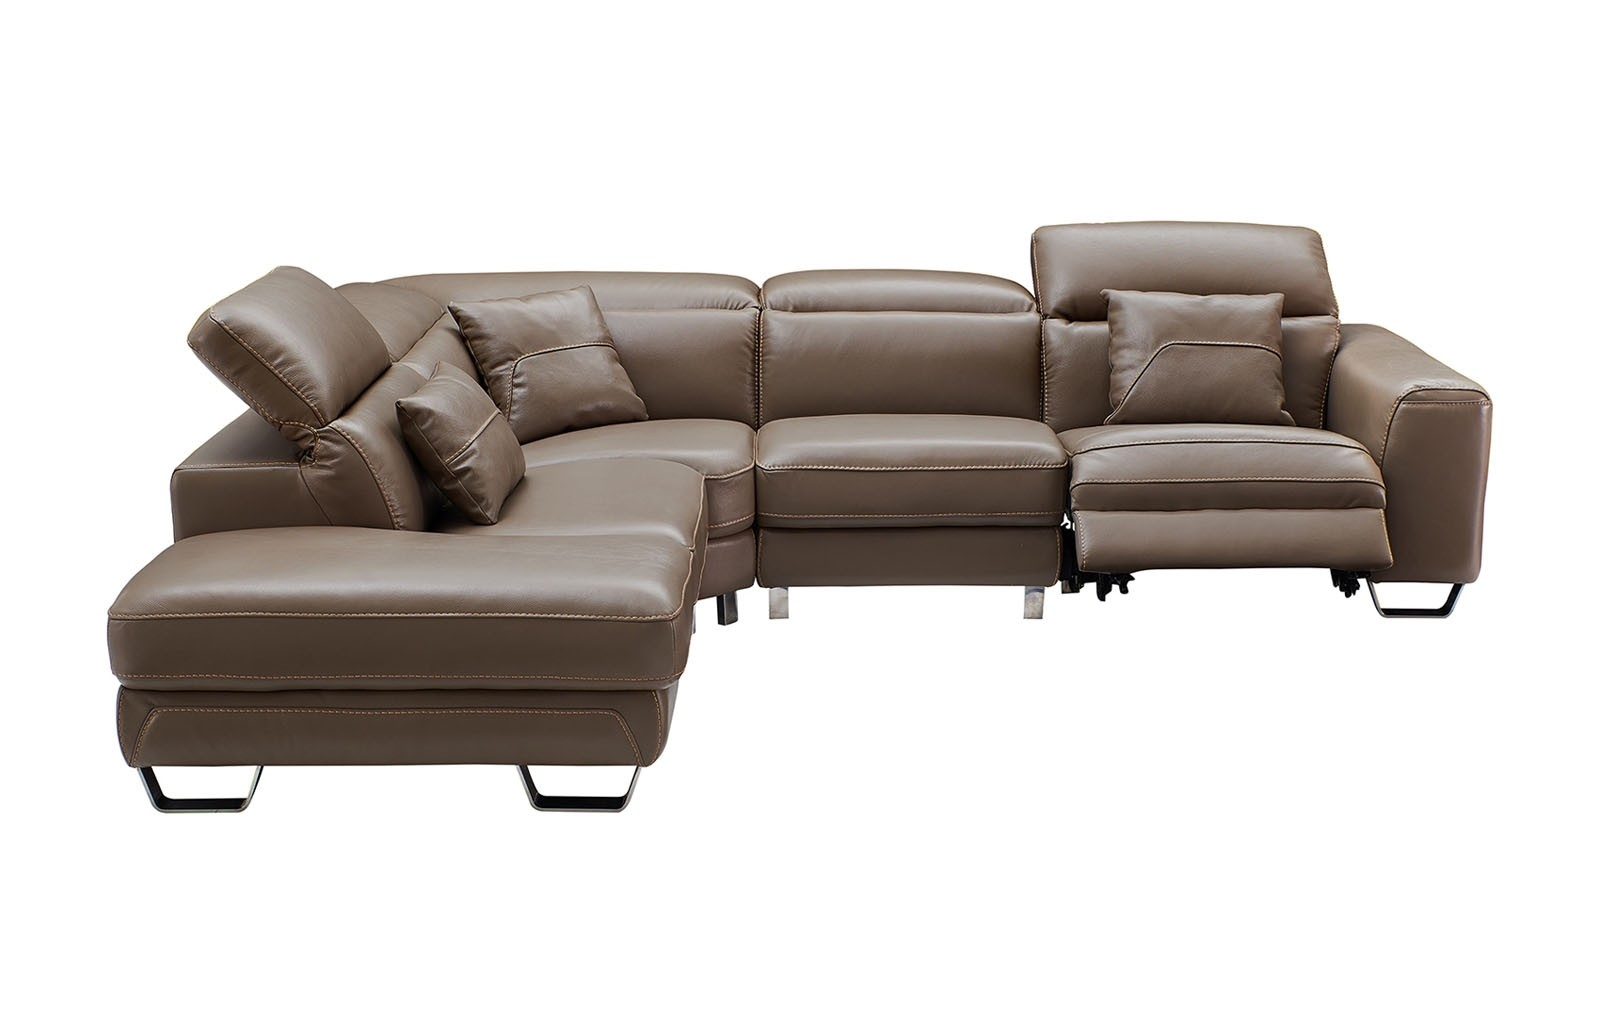 Esf 468 Sectional Sofa Brown Leather With Power Recliner